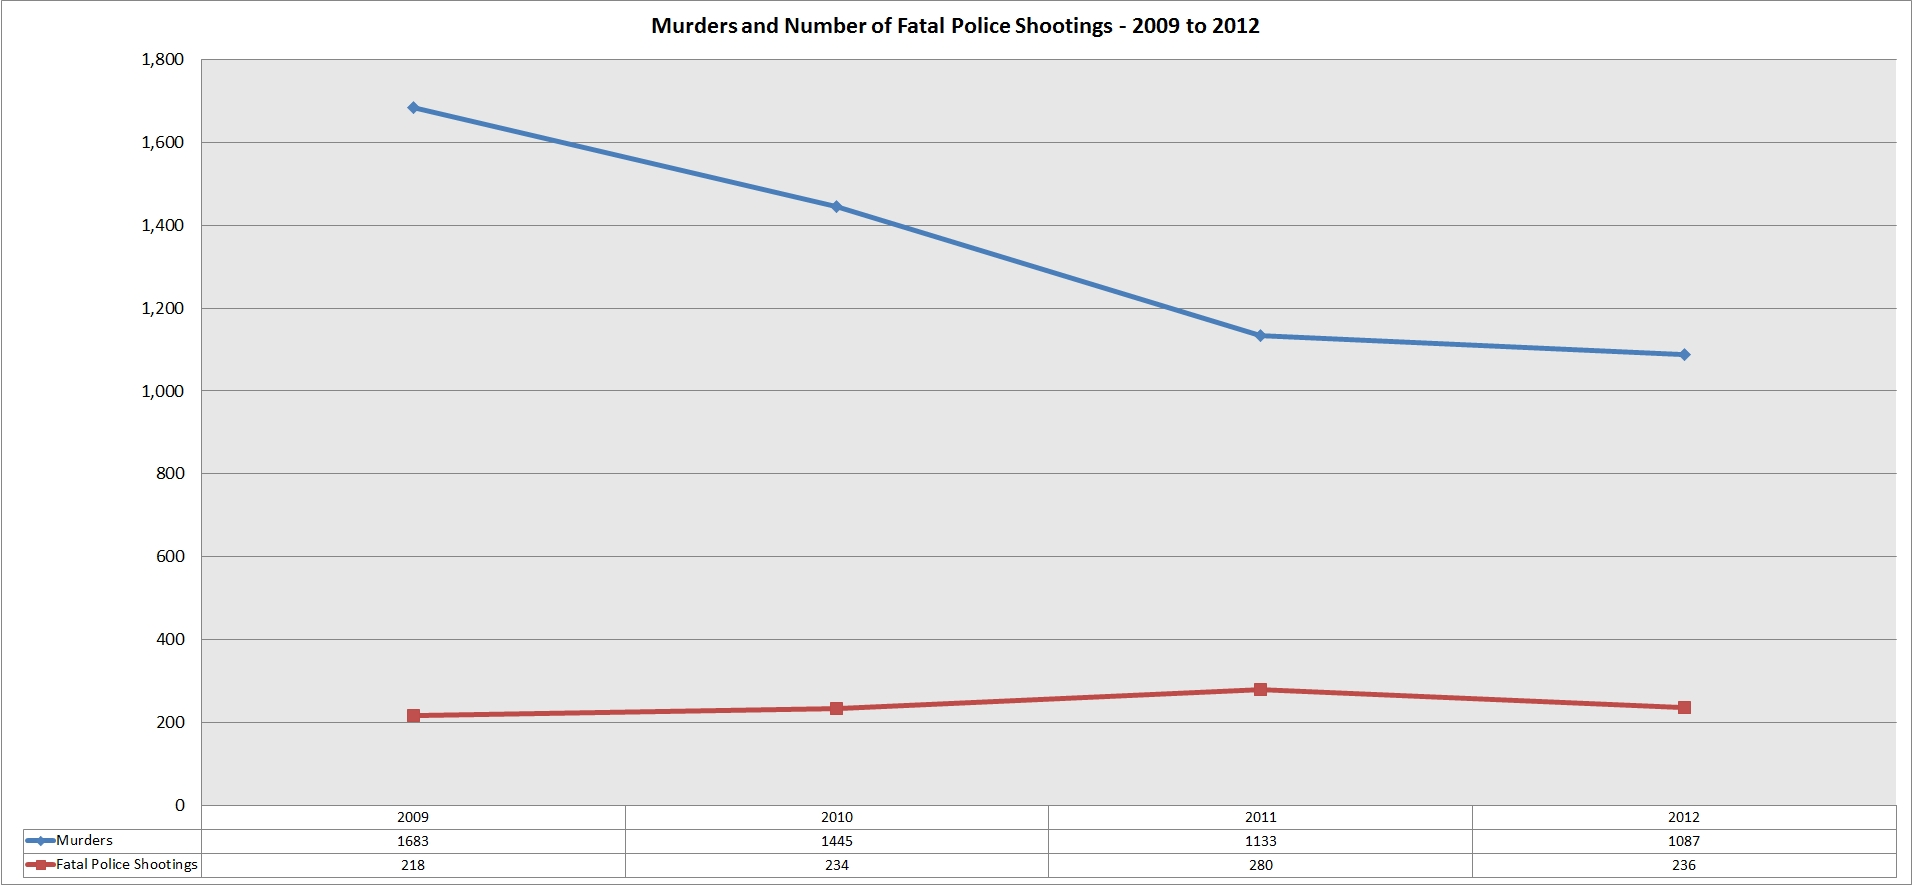 murders_fatal_police_shootings_2009_2012